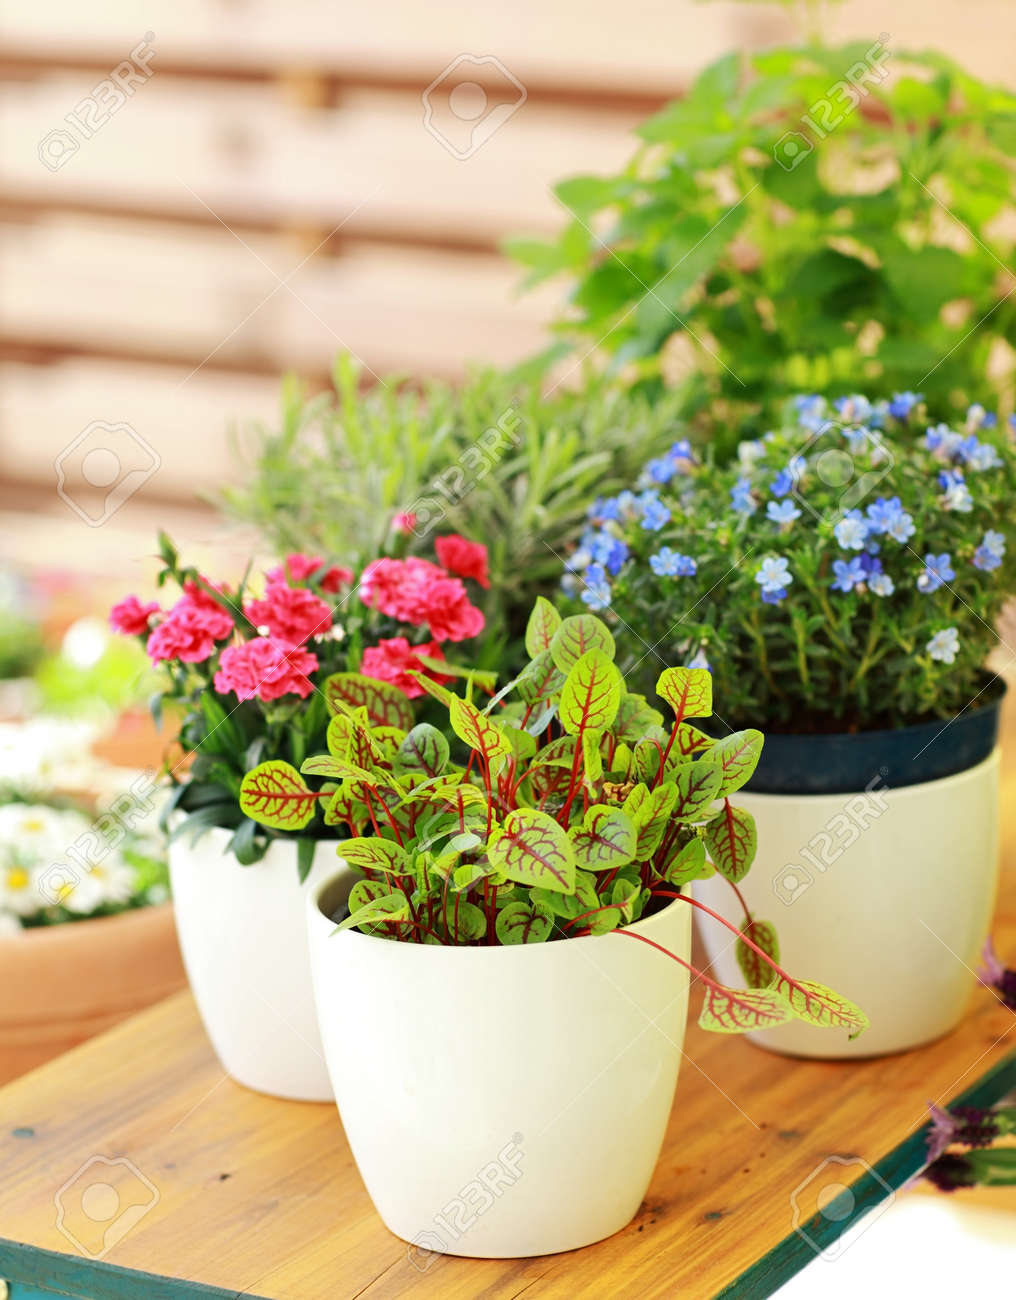 outdoor flower pots for small garden patio or terrace stock photo - Outdoor Flower Pots